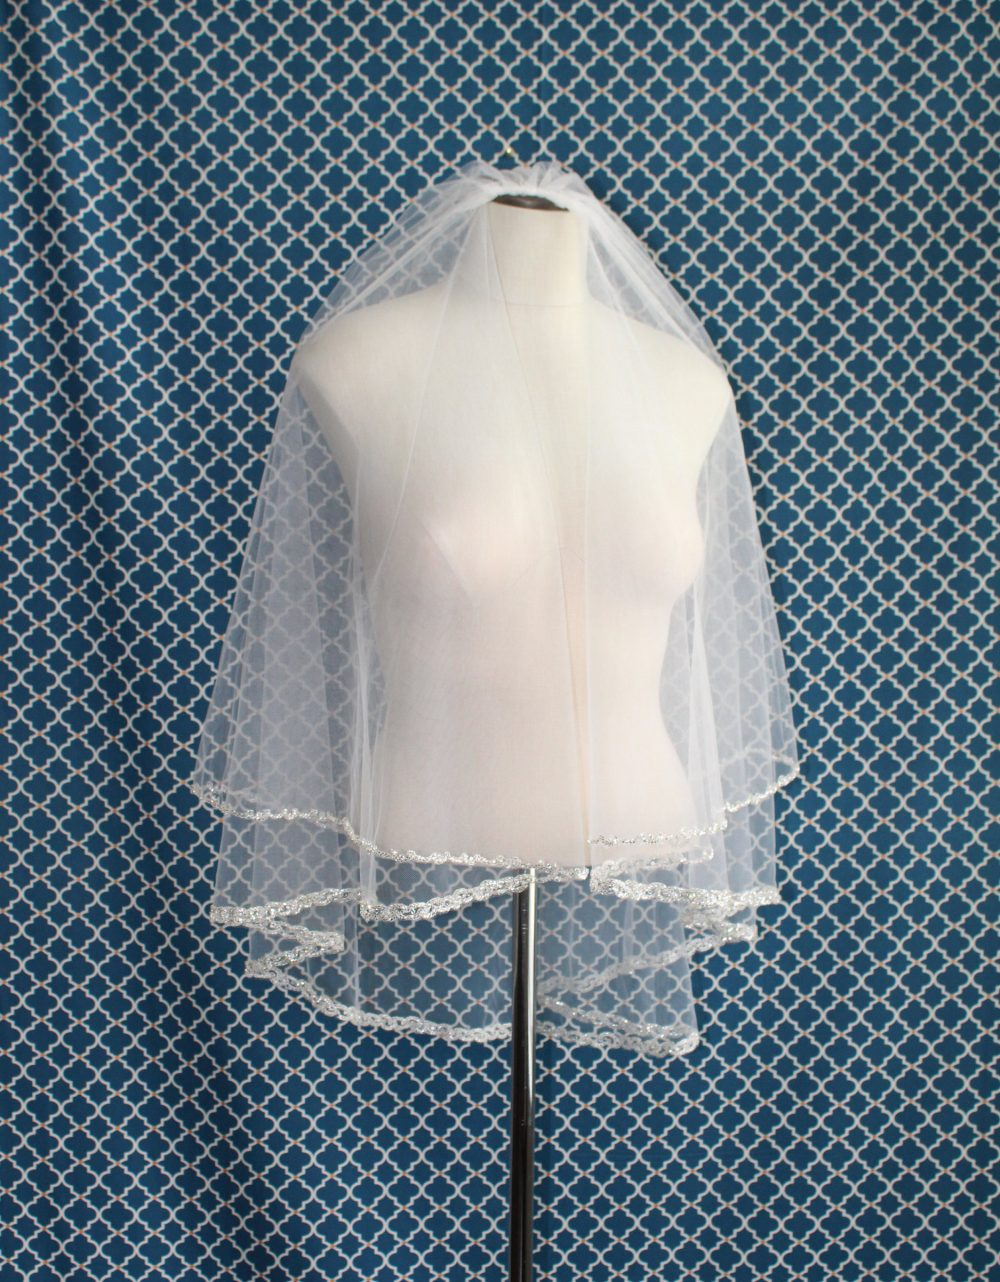 Circle Cut - Two Tier Bugle Beaded Edge Wedding Veil W/Silver Accents Veils With Silver Beads